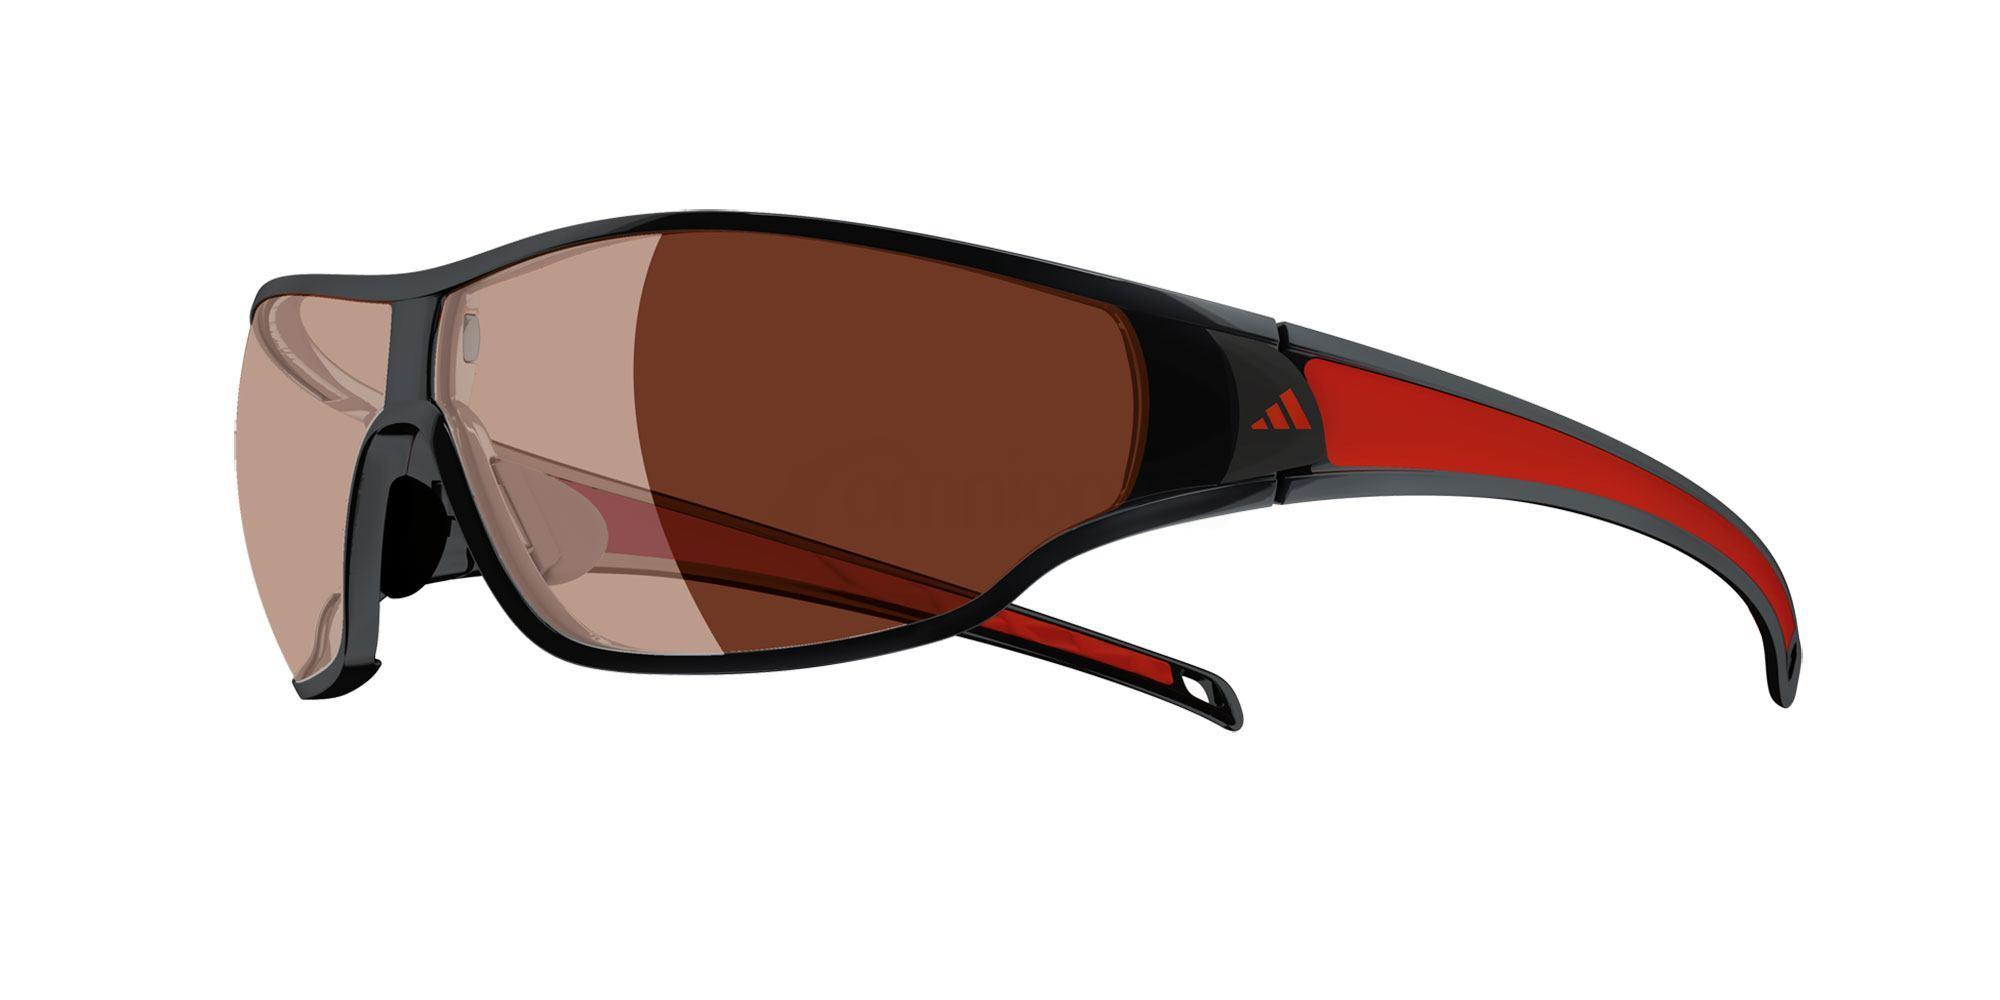 00 6051 a192 Tycane S Polarized Sunglasses, Adidas